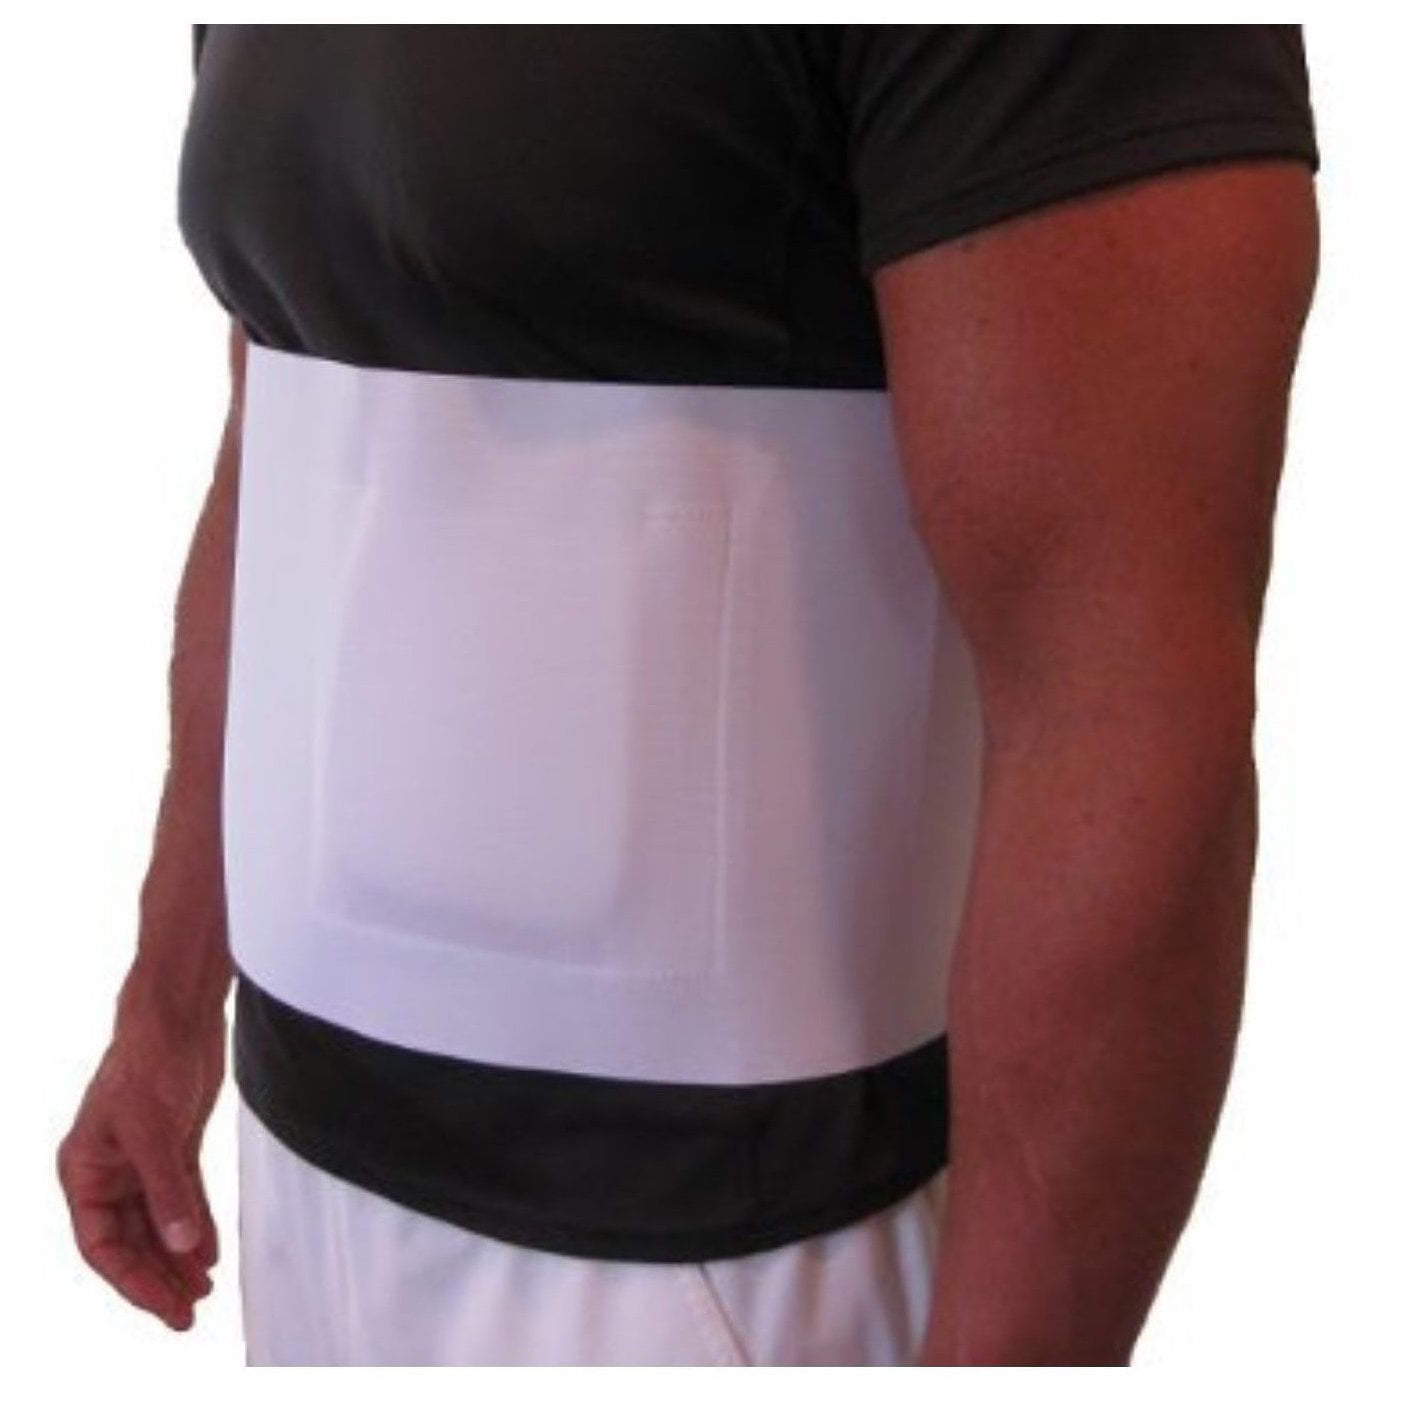 Flexamed Umbilical Hernia Belt With Compression Pad 8 Wide